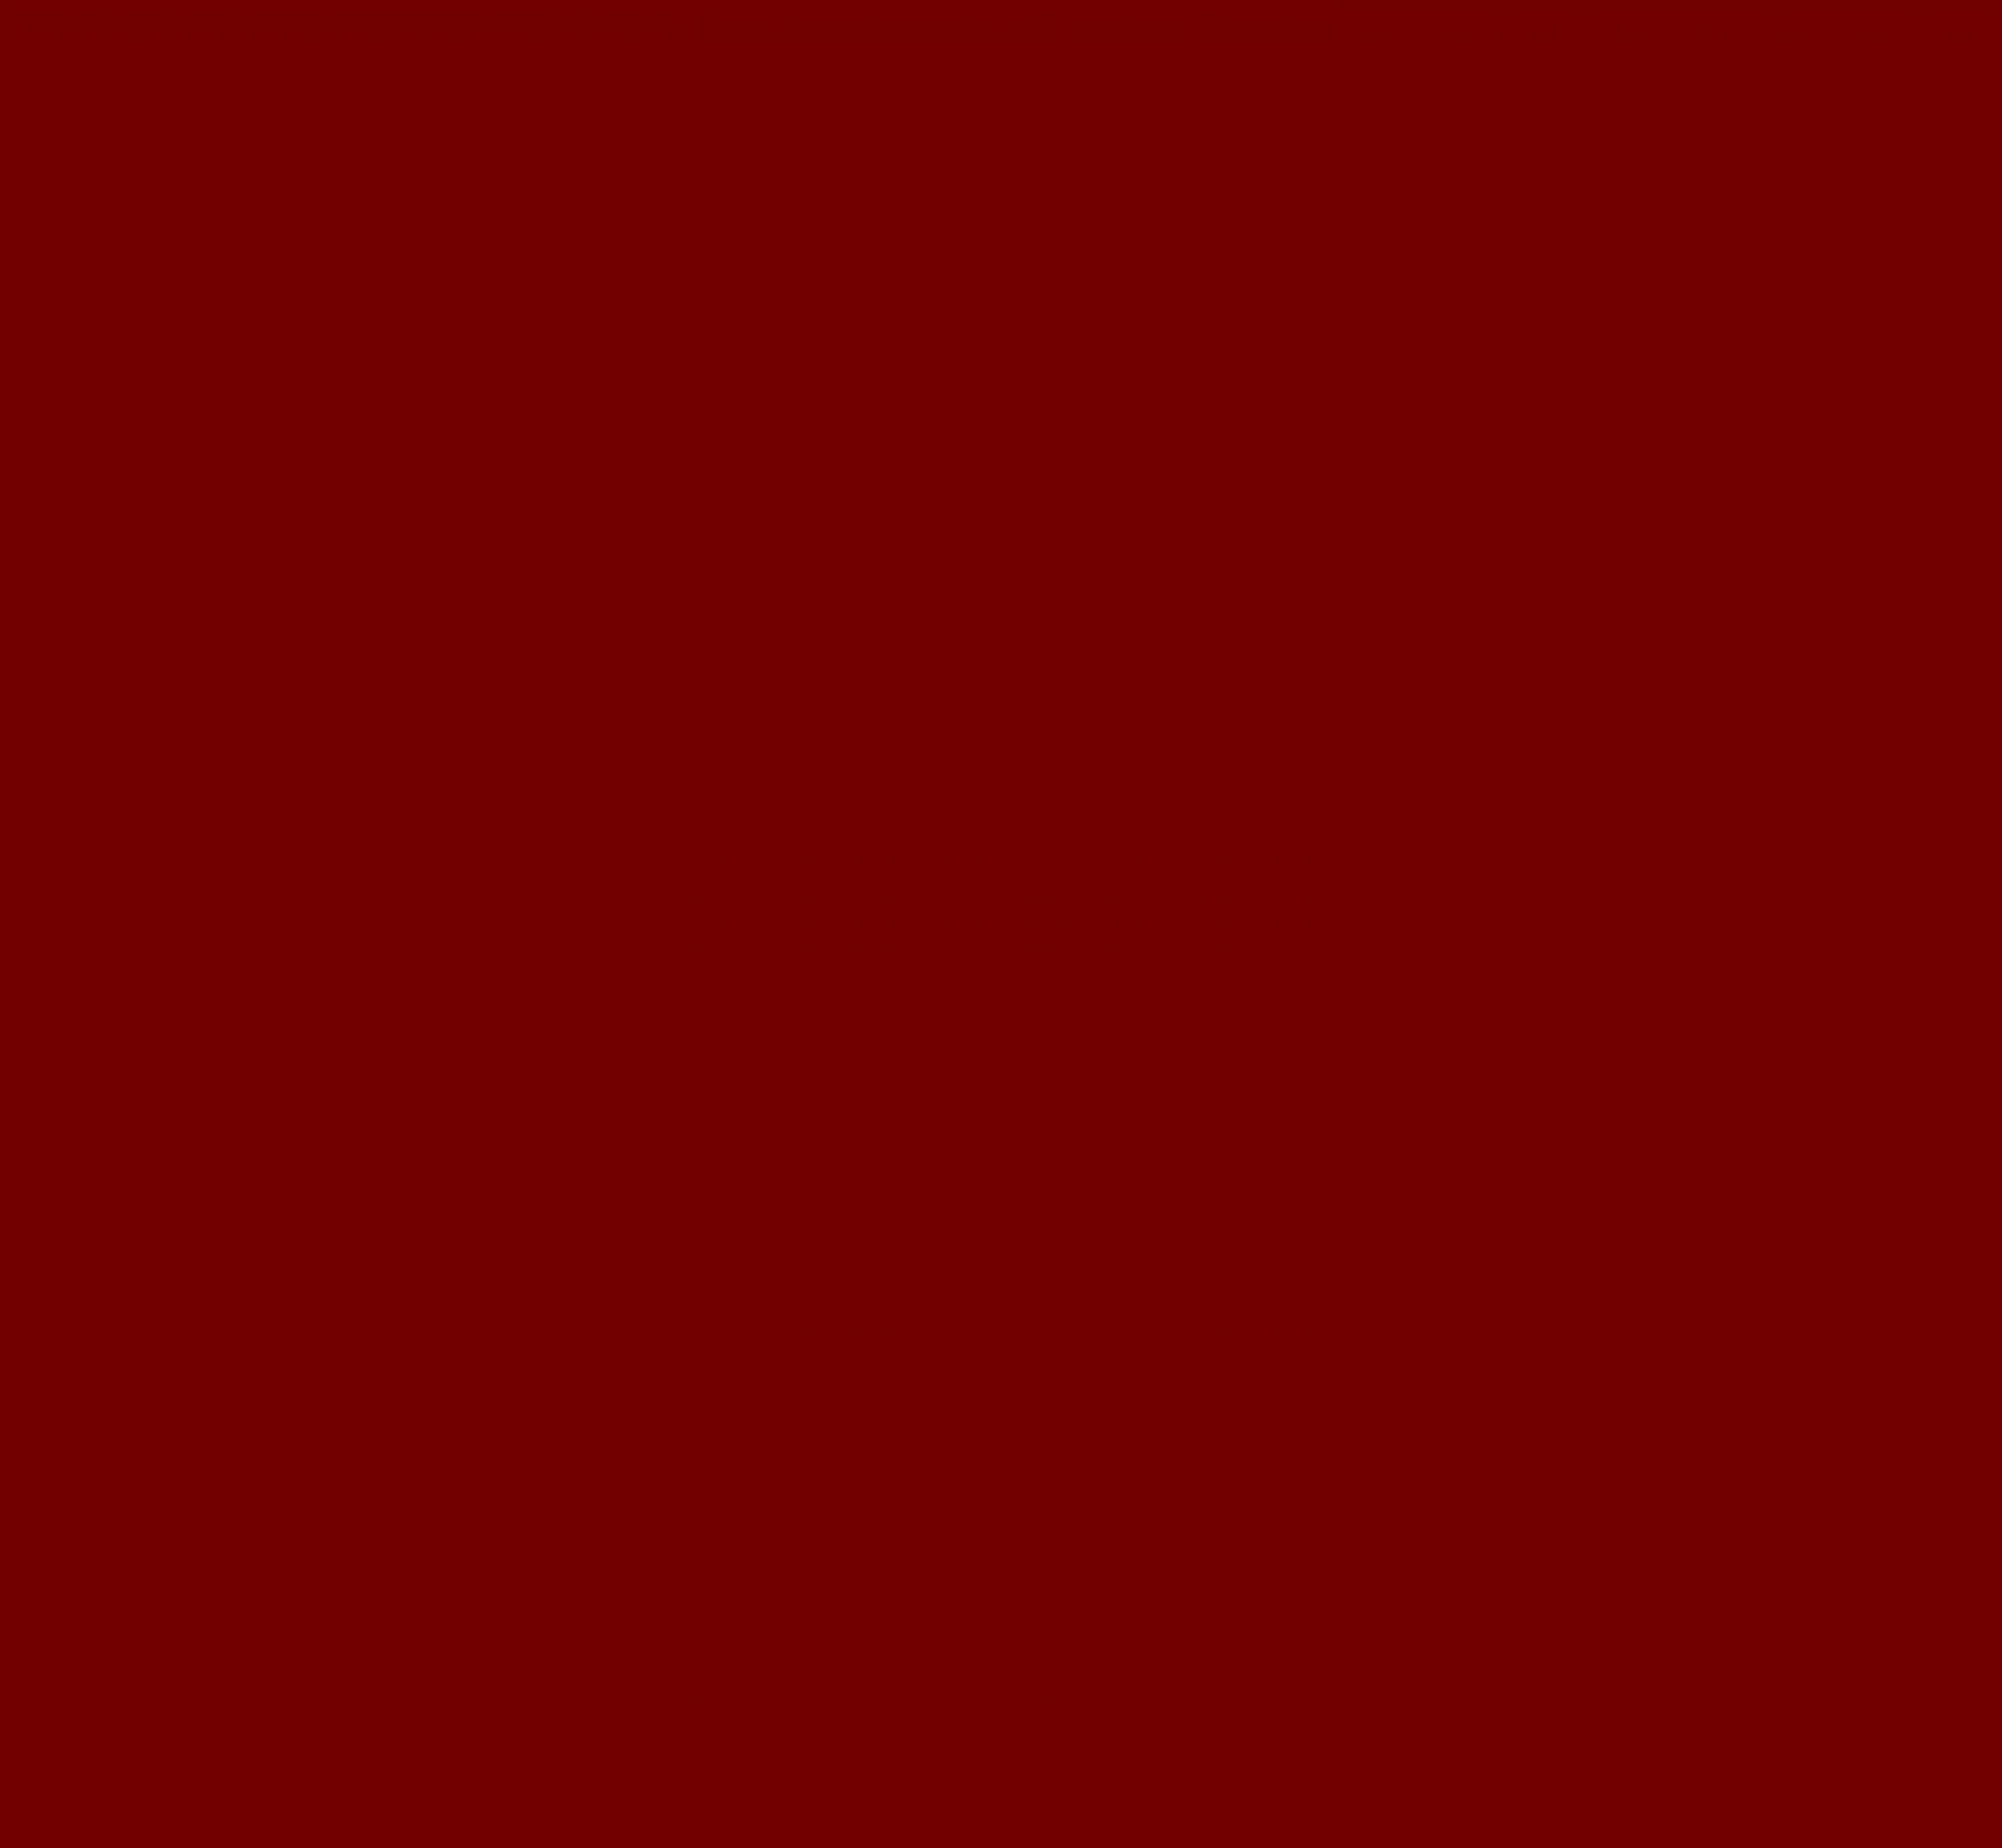 Cherry Red Lacanche Colour Sample - Lacanche Range Cookers